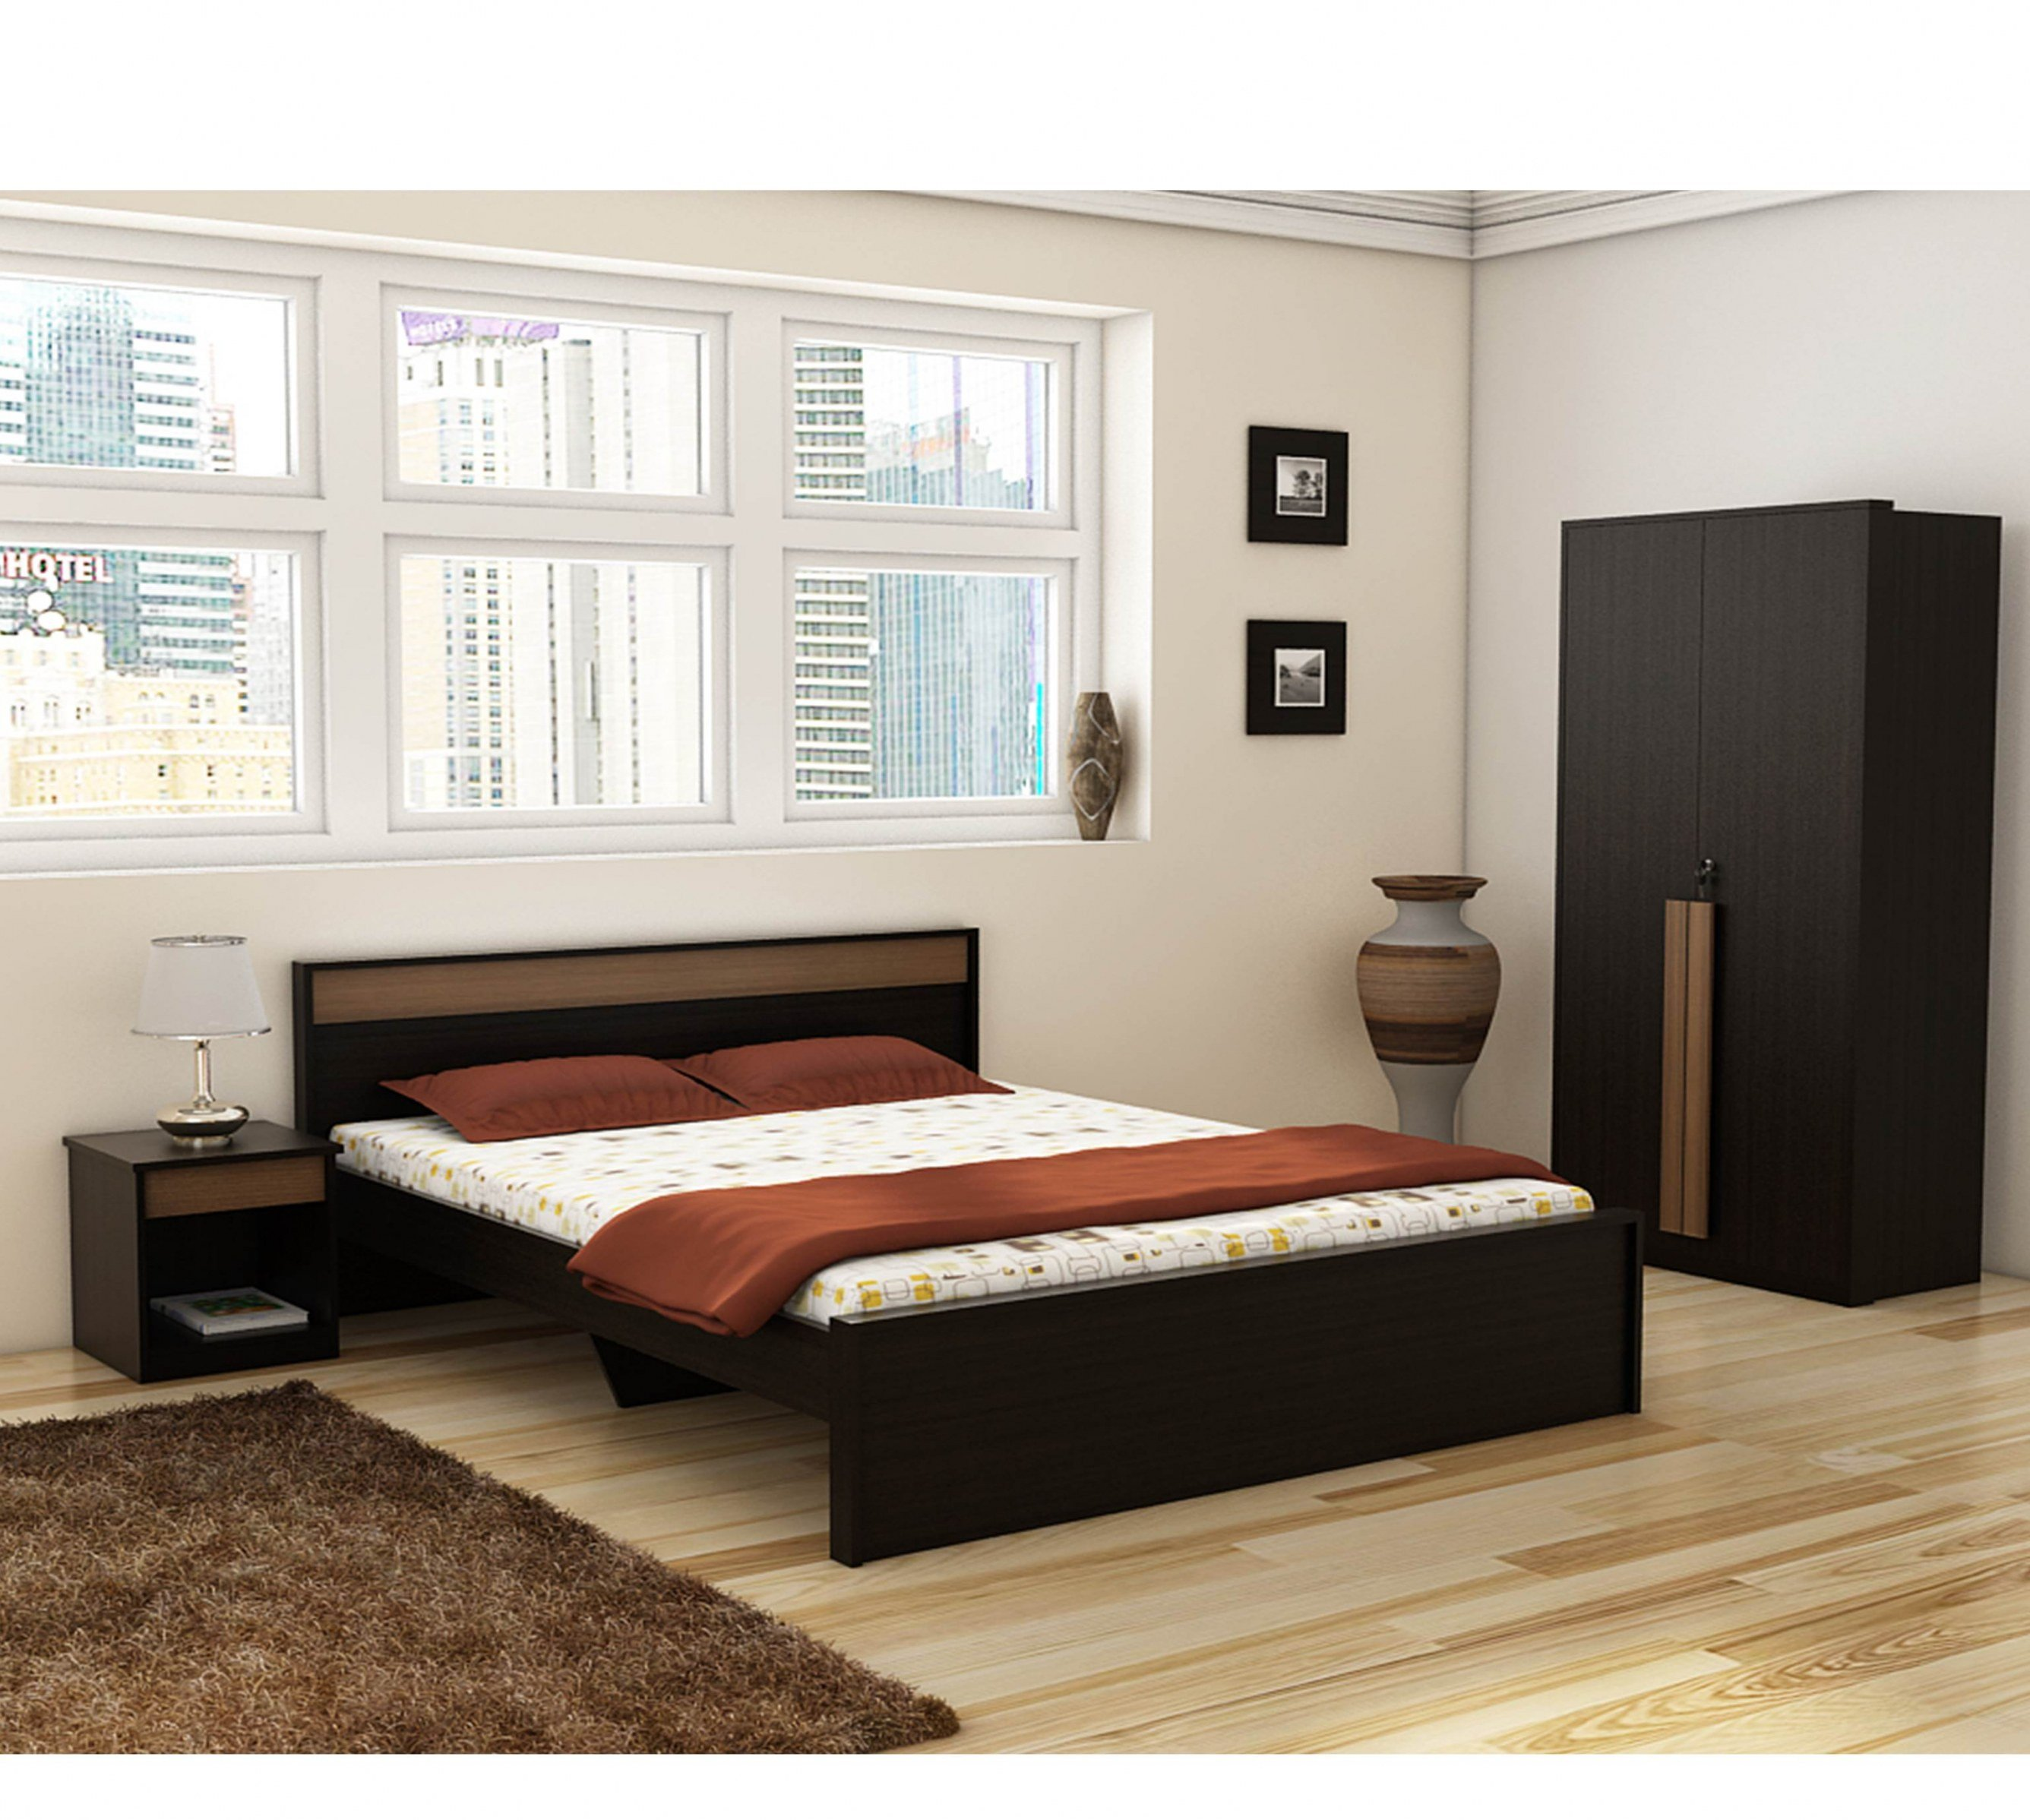 Modern White Bedroom Set Lovely Low Beds Ikea White Bedroom Furniture Sets Ikea White Hemnes